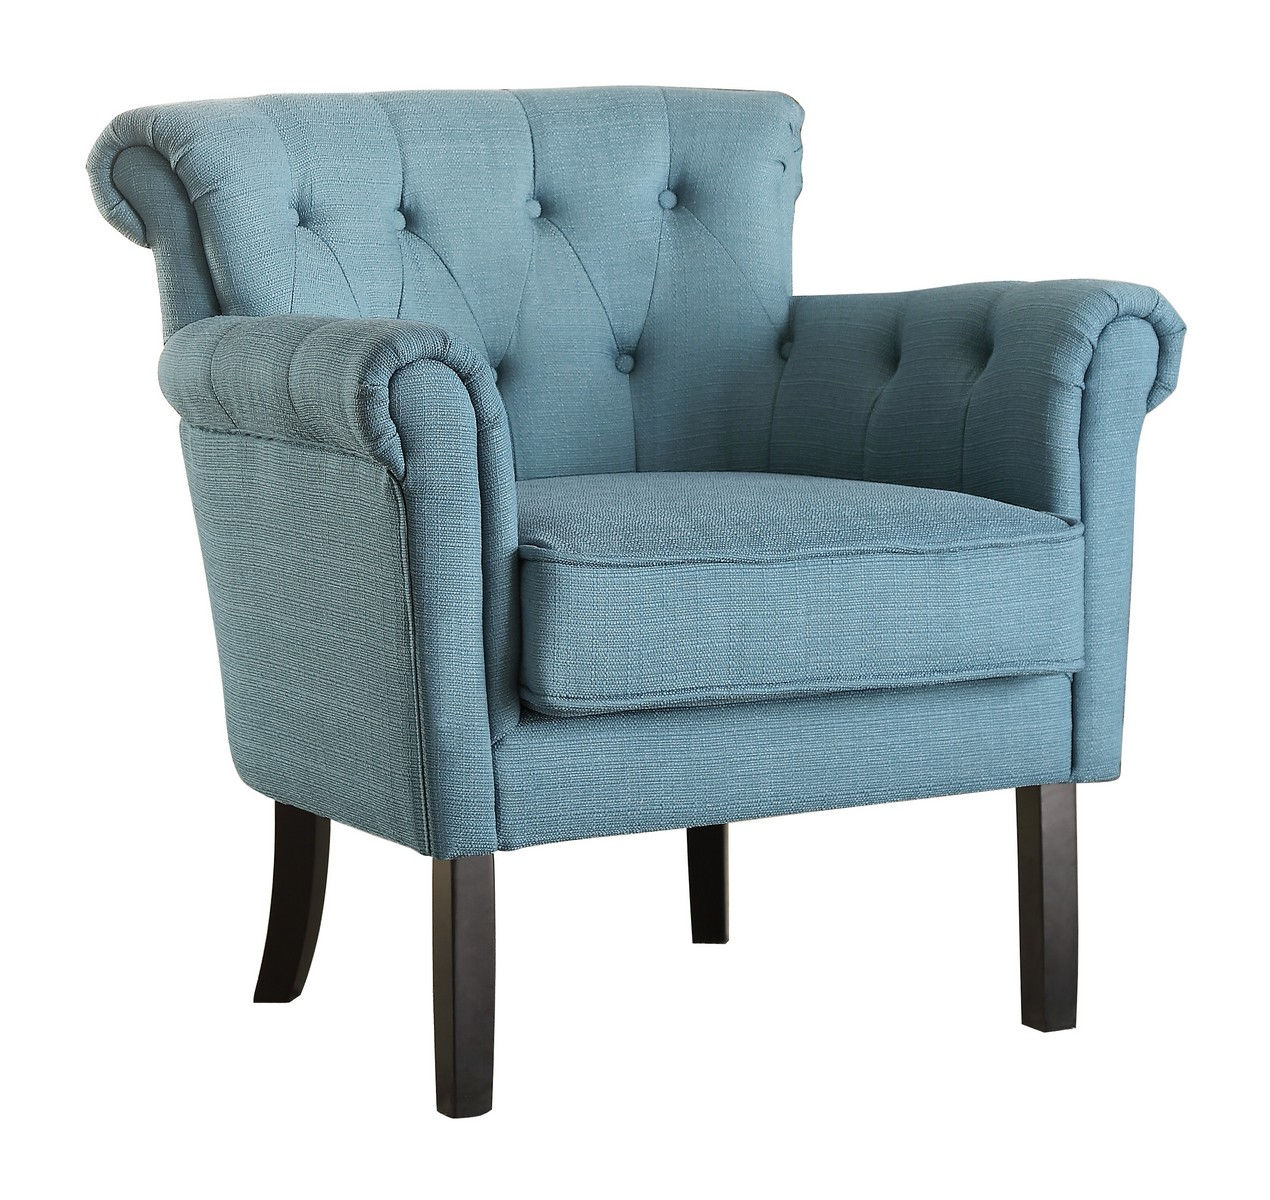 Homelegance Barlowe Accent Chair - Dark Teal